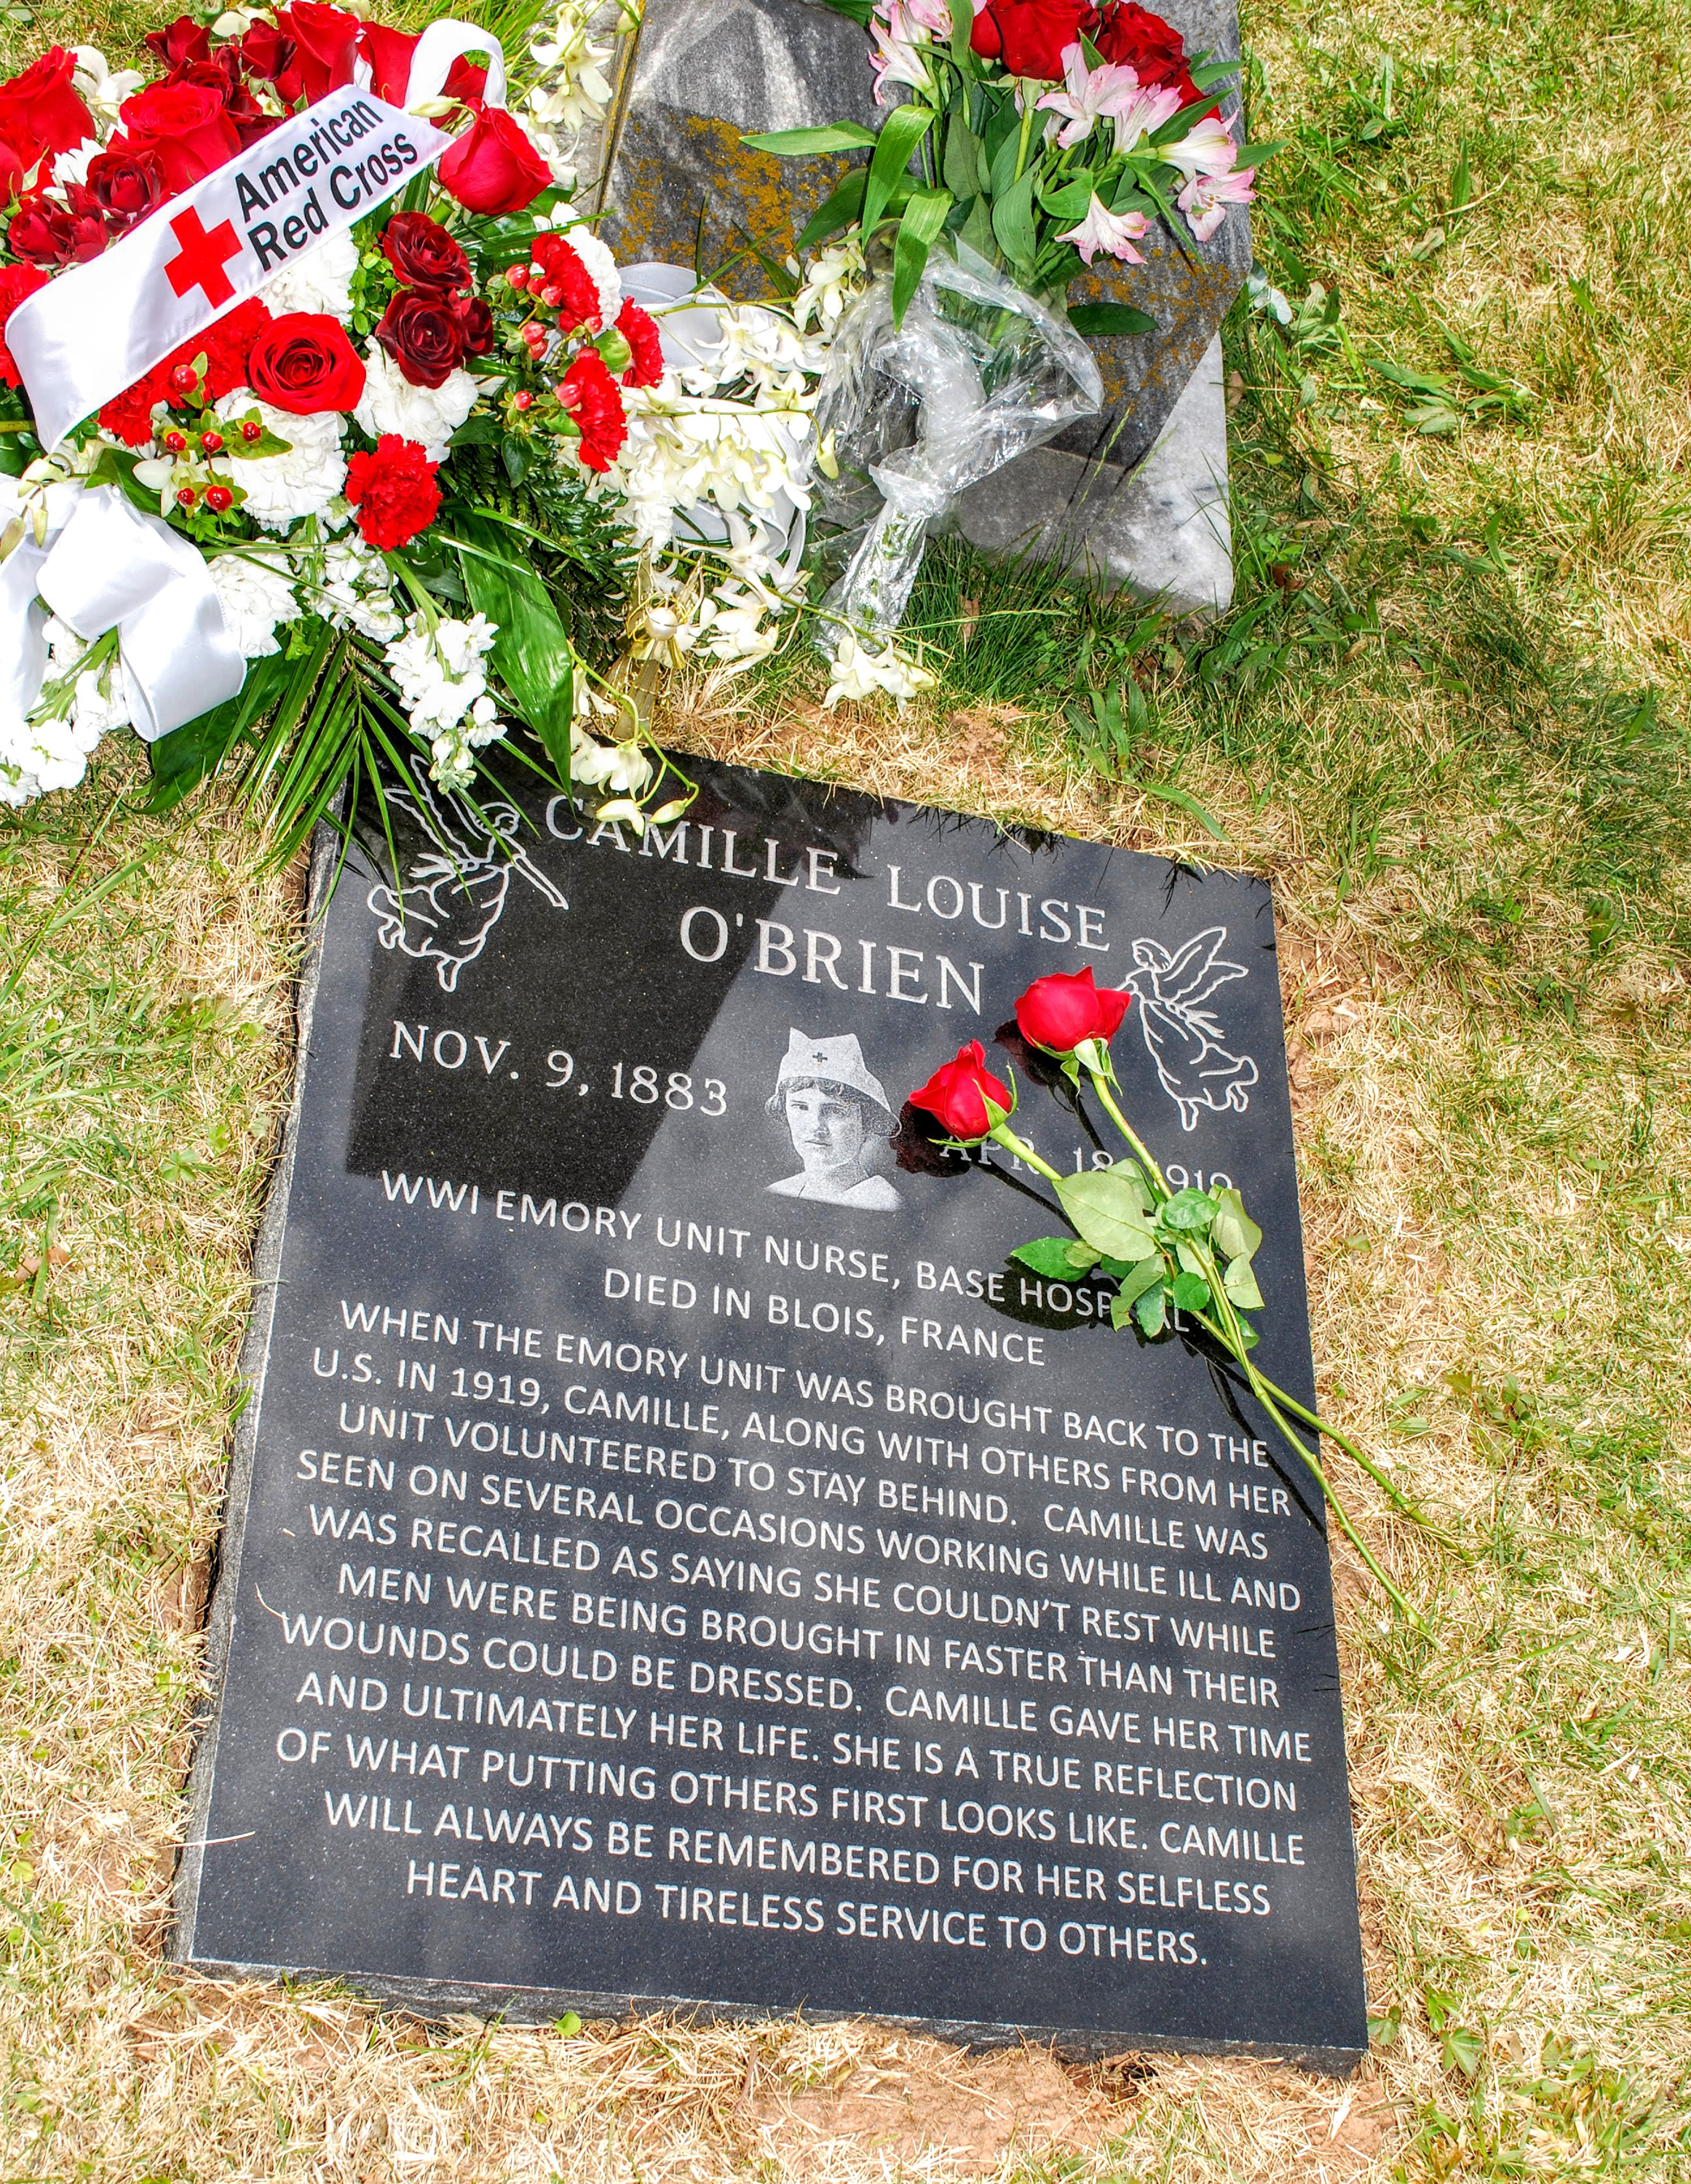 Grave marker for Camille O'Brien.  Two red roses lying on top